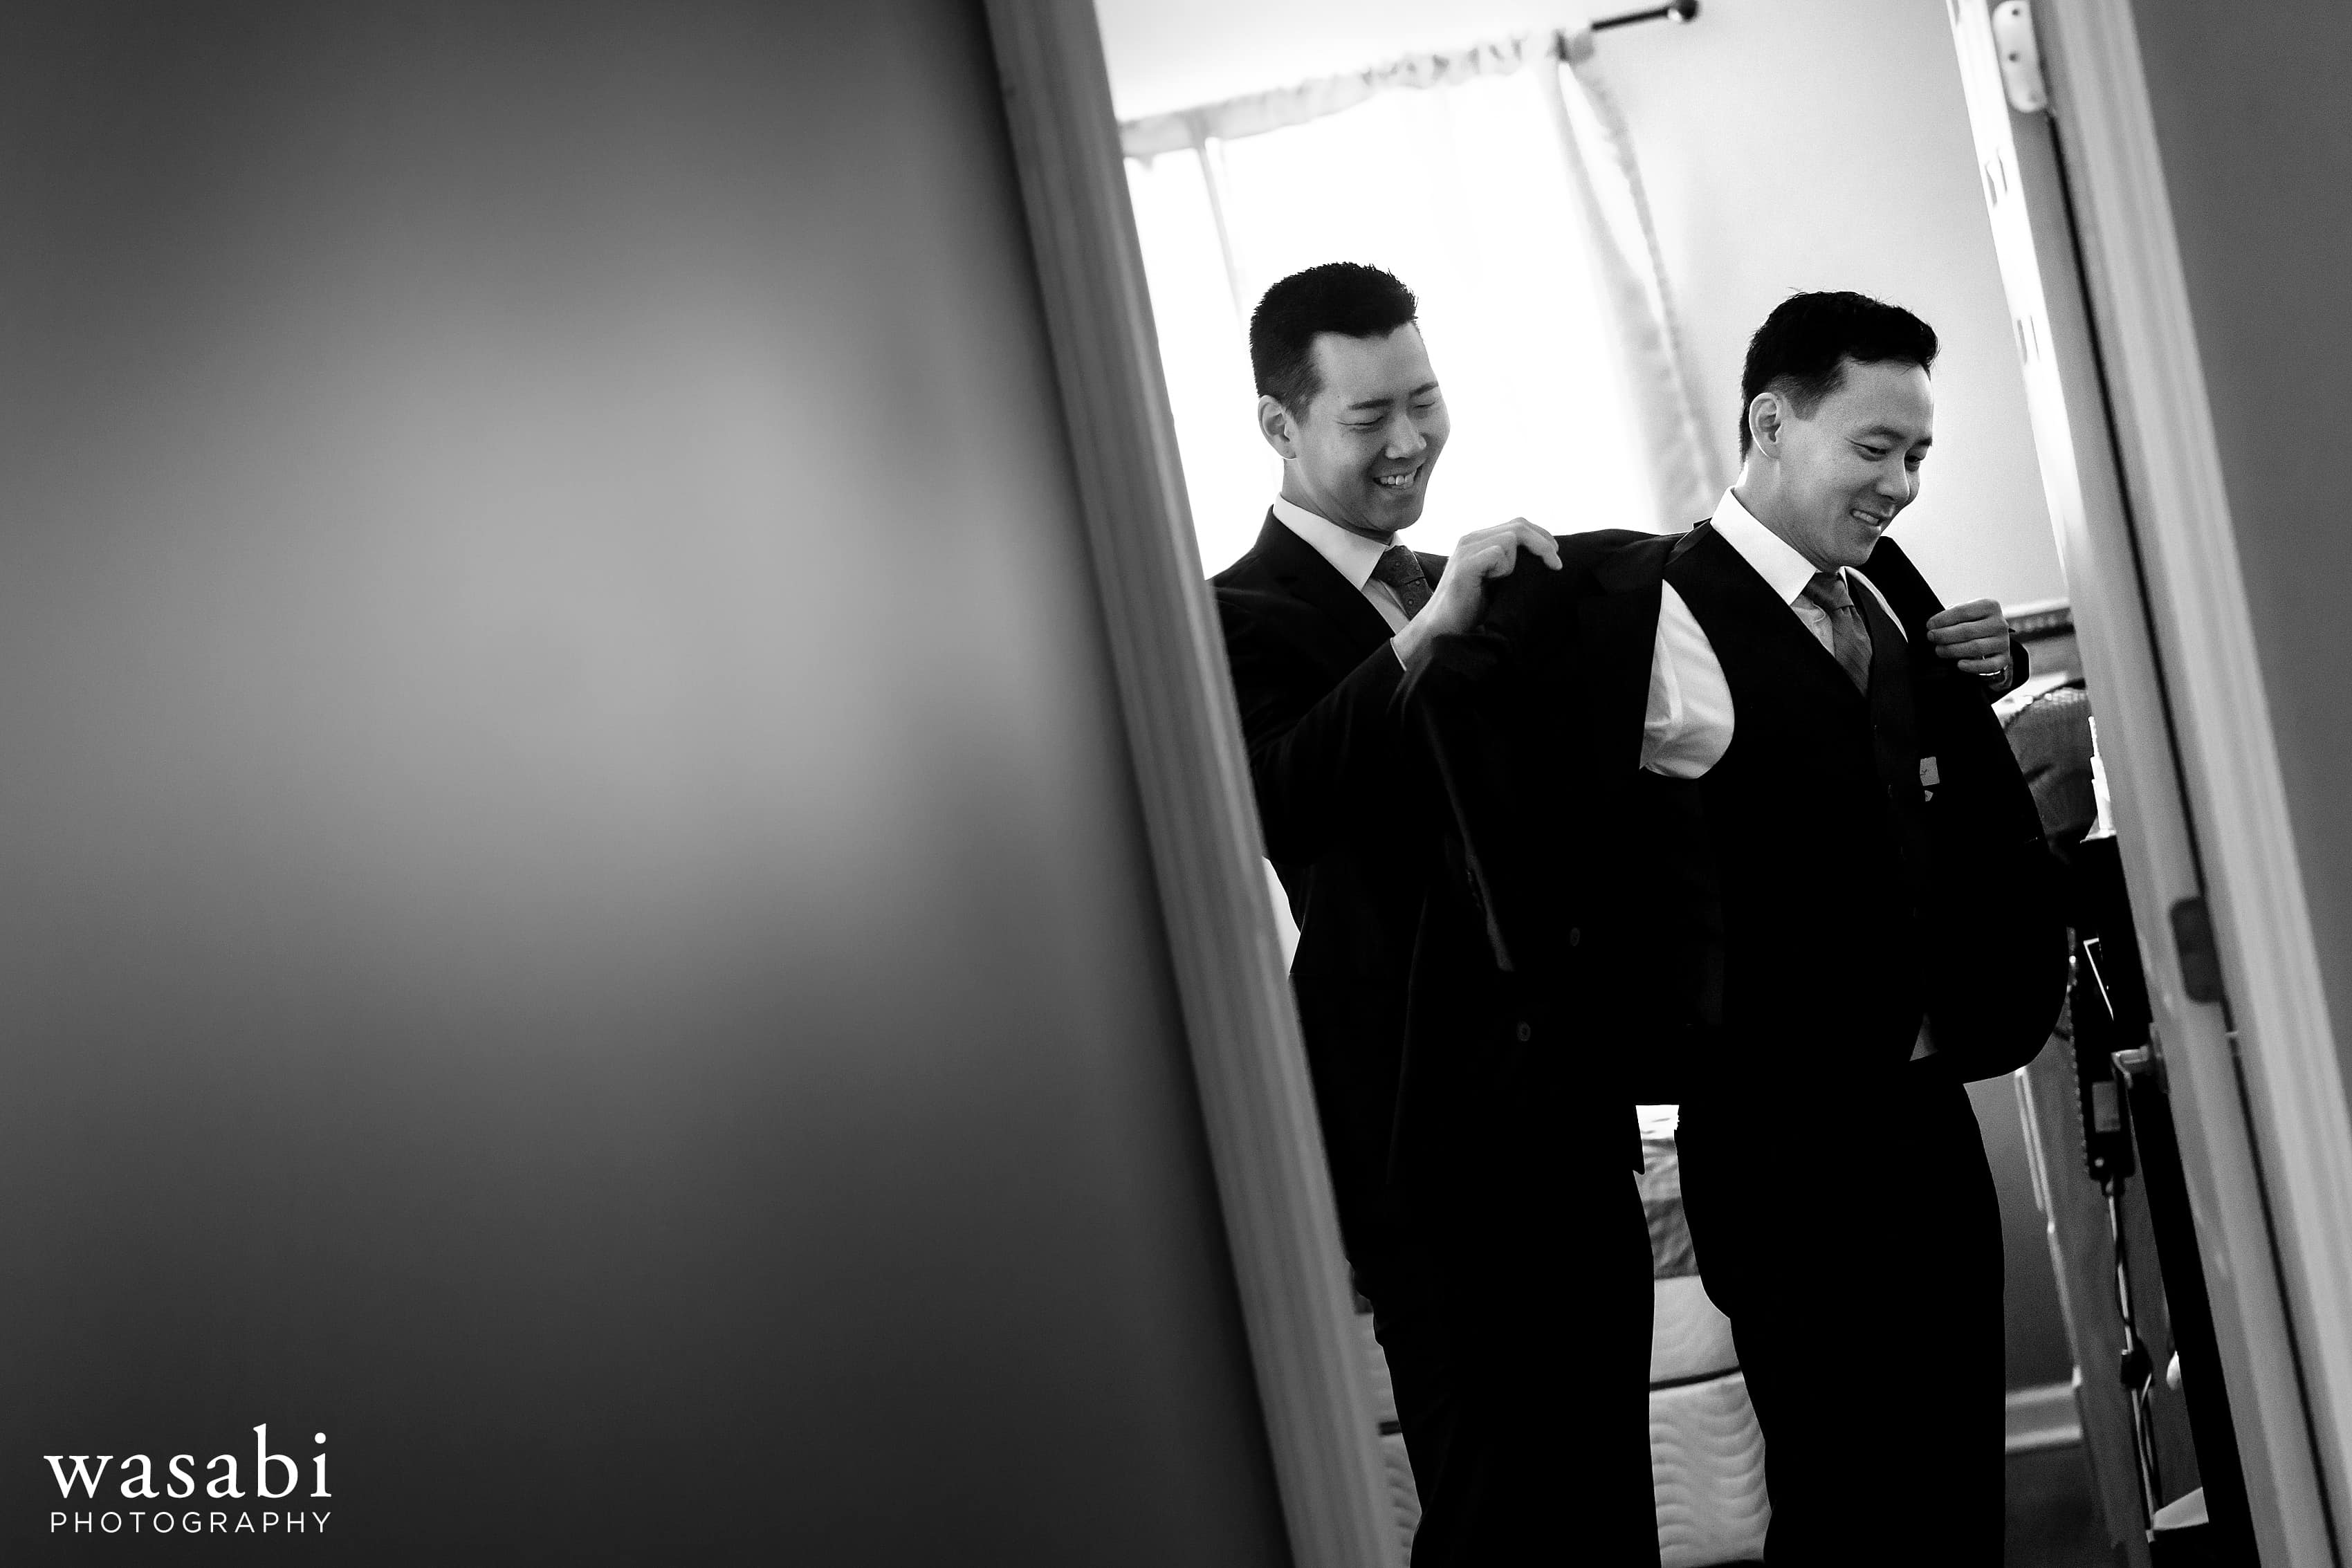 best man helps groom into suit jacket while getting ready for wedding